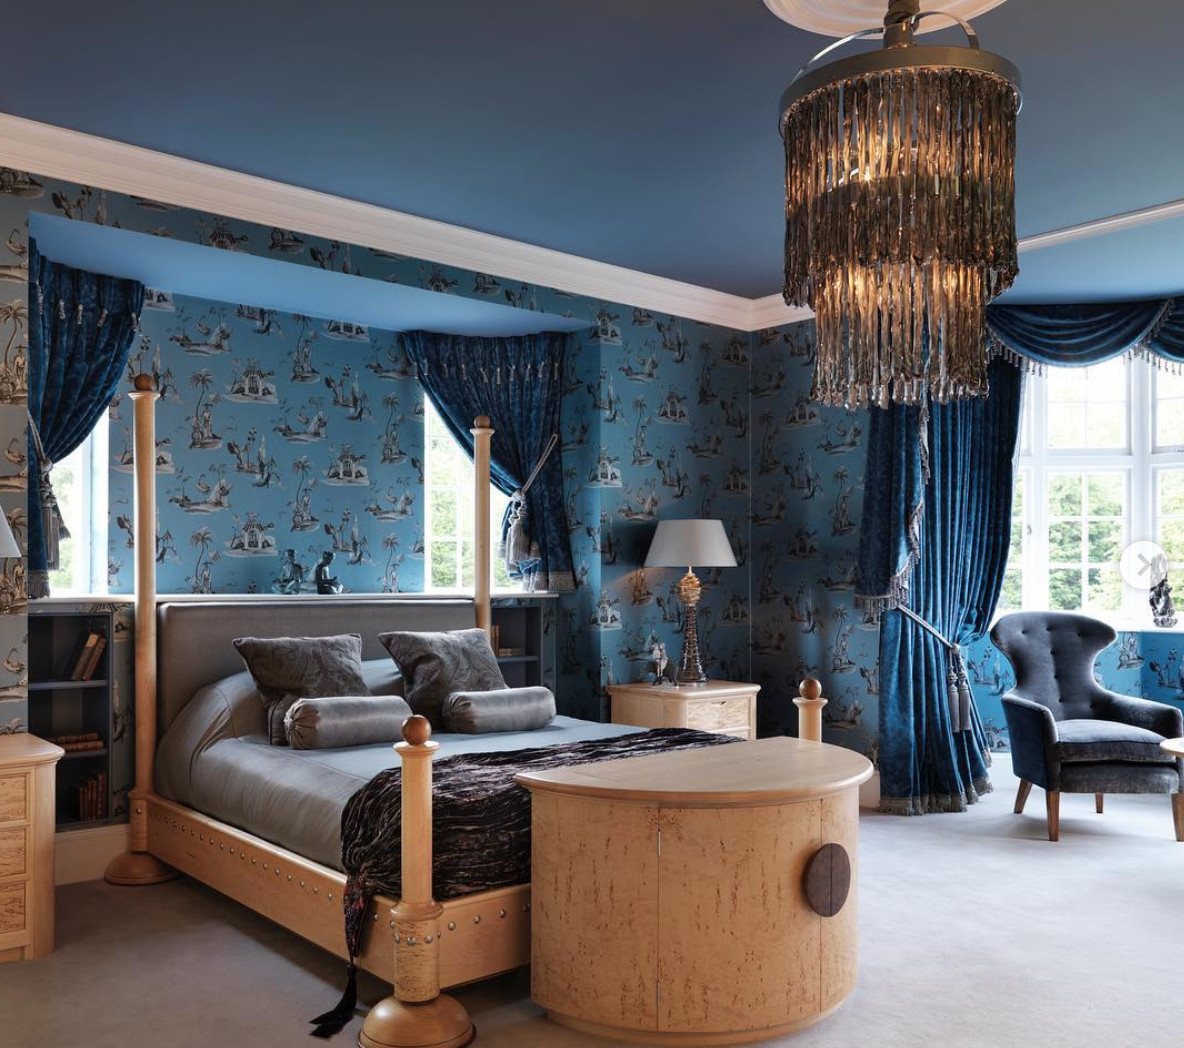 Shades Of Blue for Bedroom Fresh the Opulent Blue Bedroom